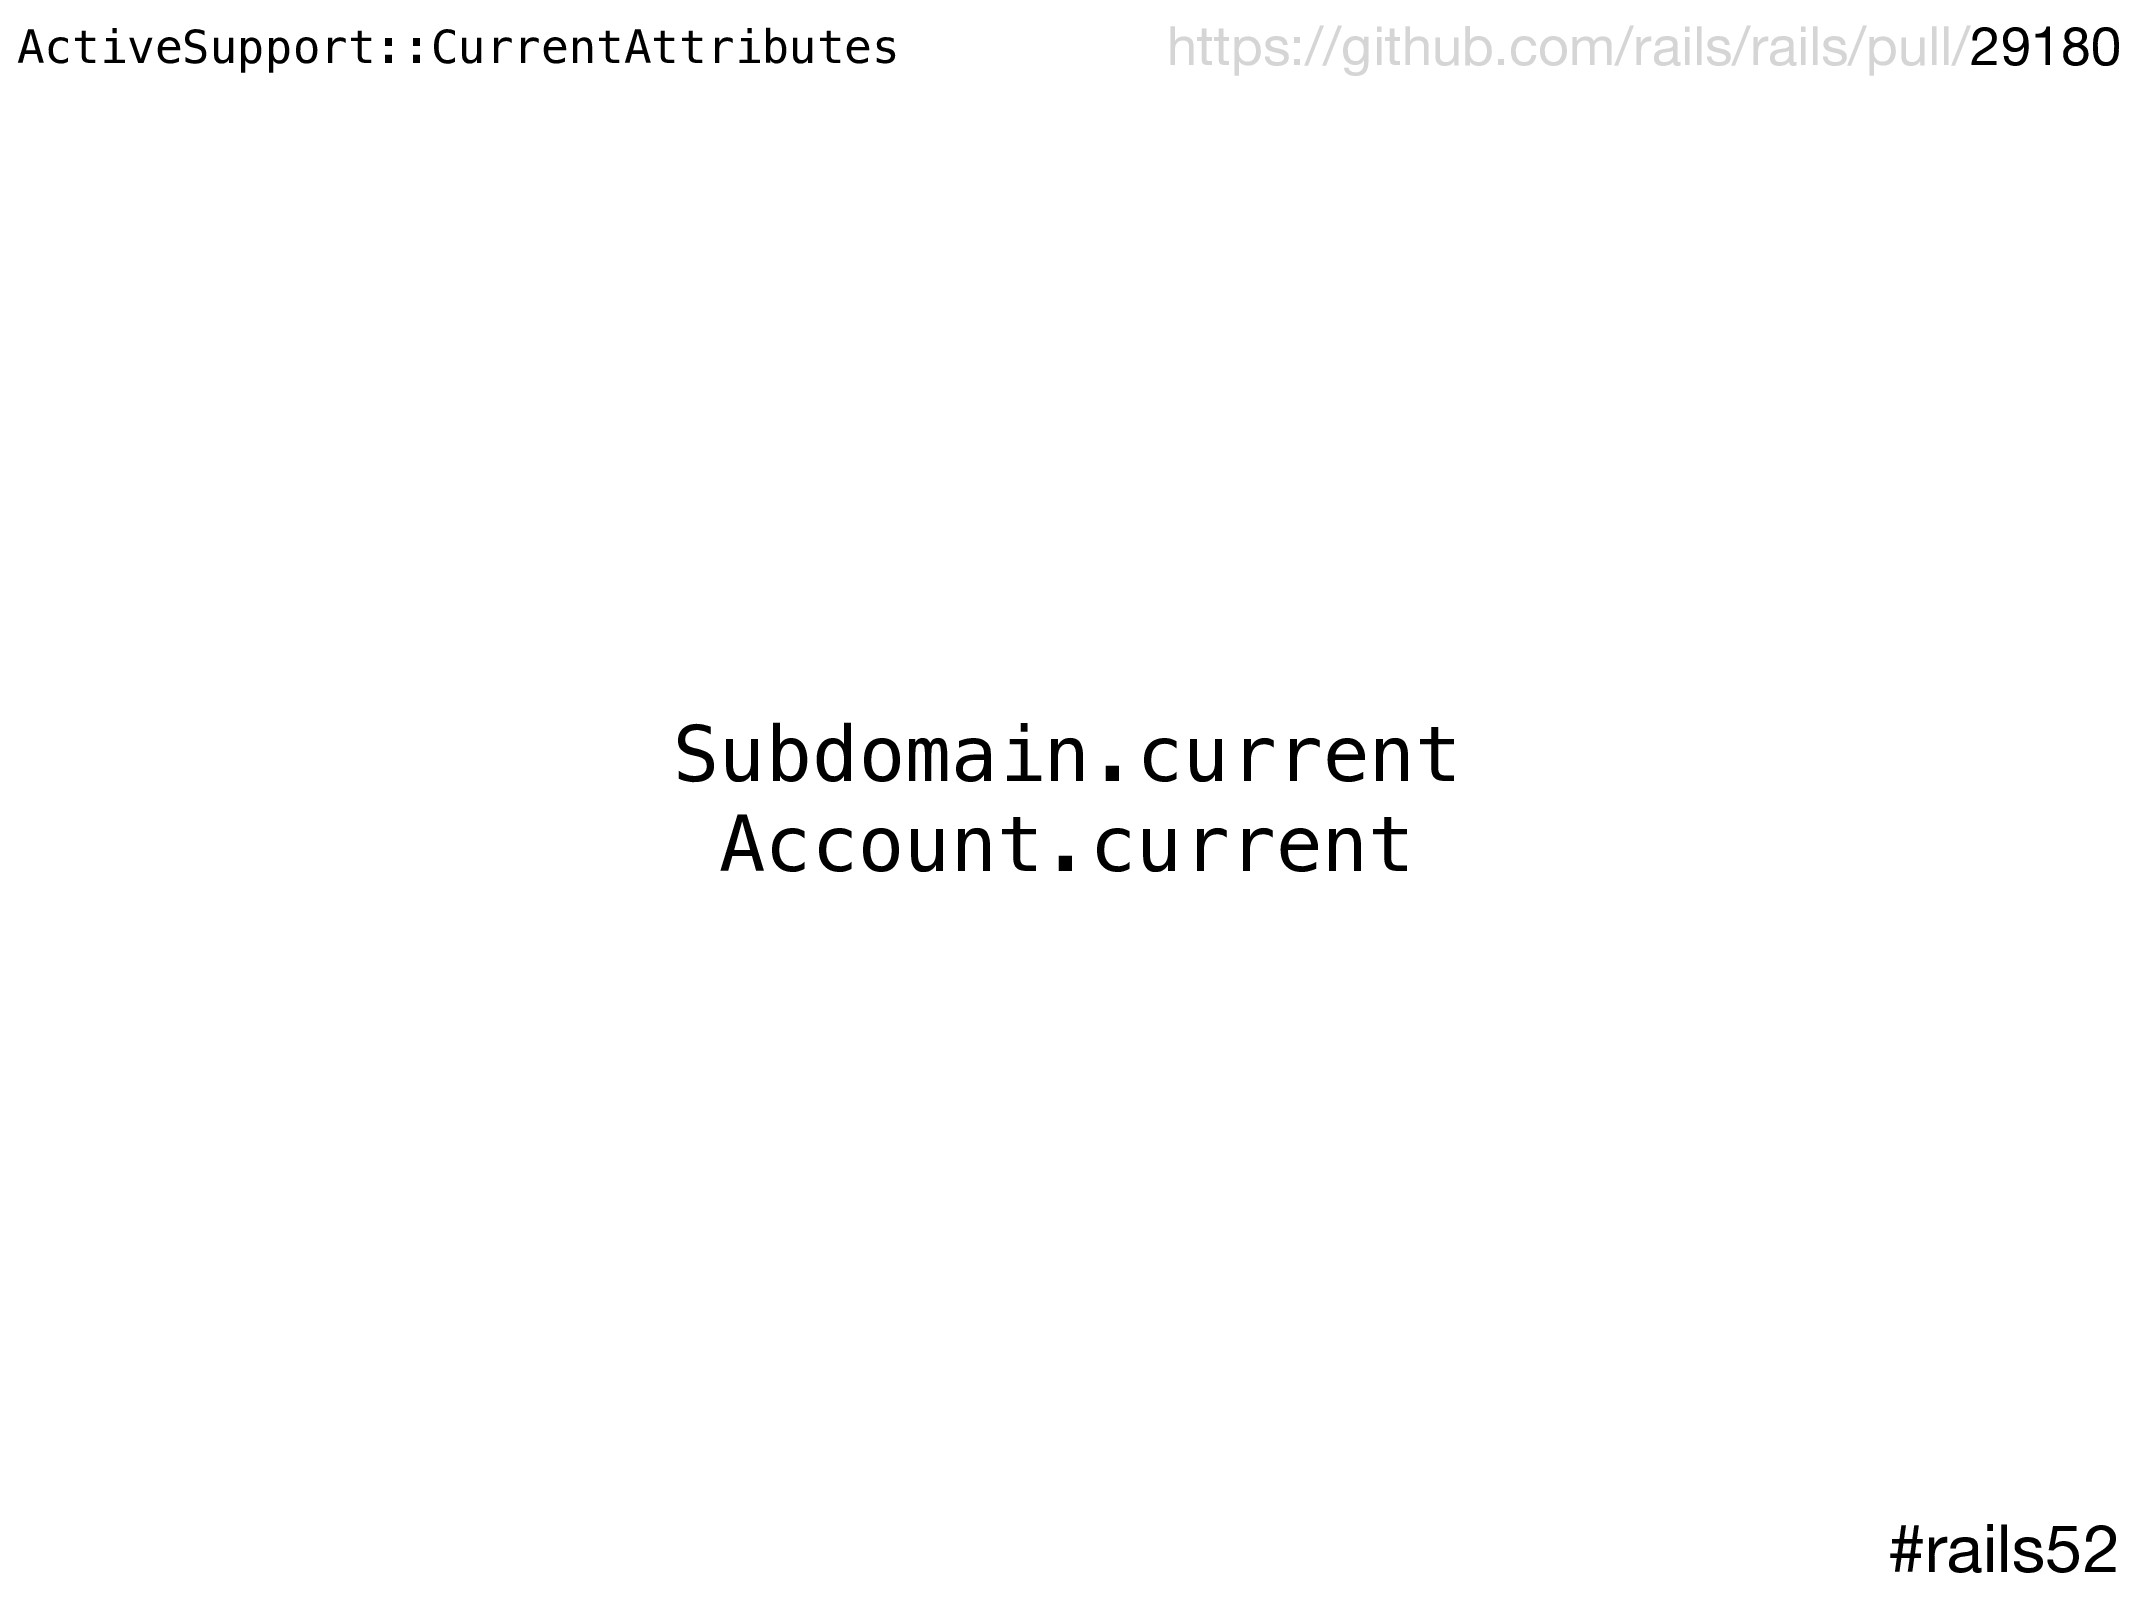 Subdomain.current Account.current #rails52 http...